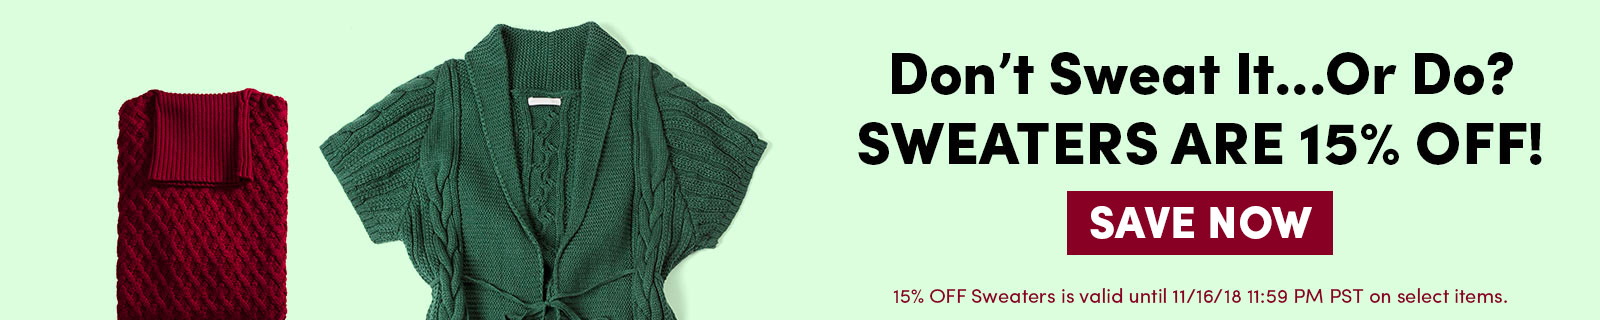 Don't Sweat It...Or Do? SWEATERS ARE 15% OFF! SAVE NOW